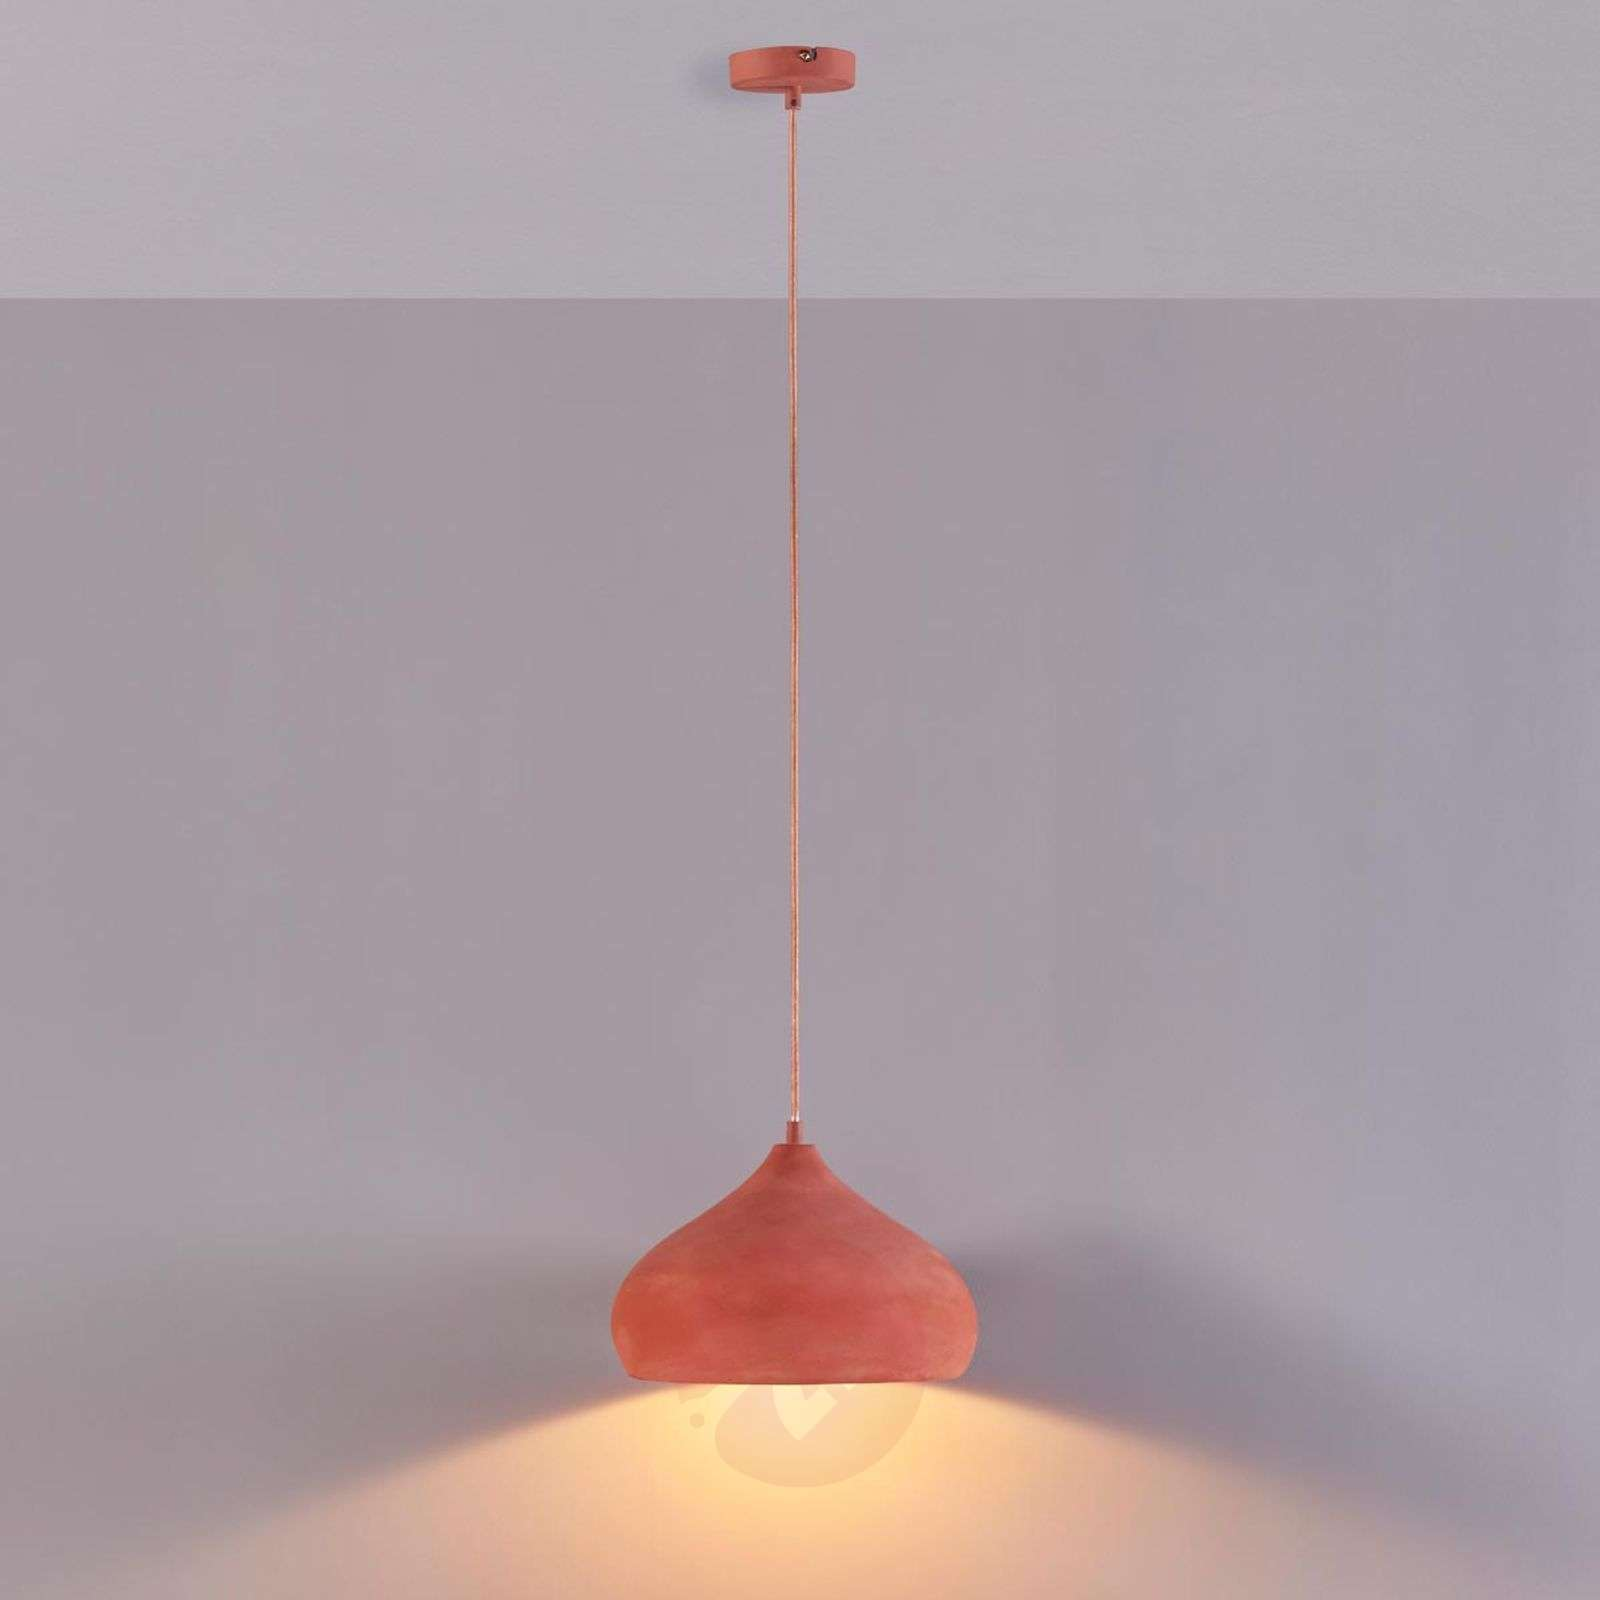 Suspension terracotta Fiona de forme esthétique-9620739-04